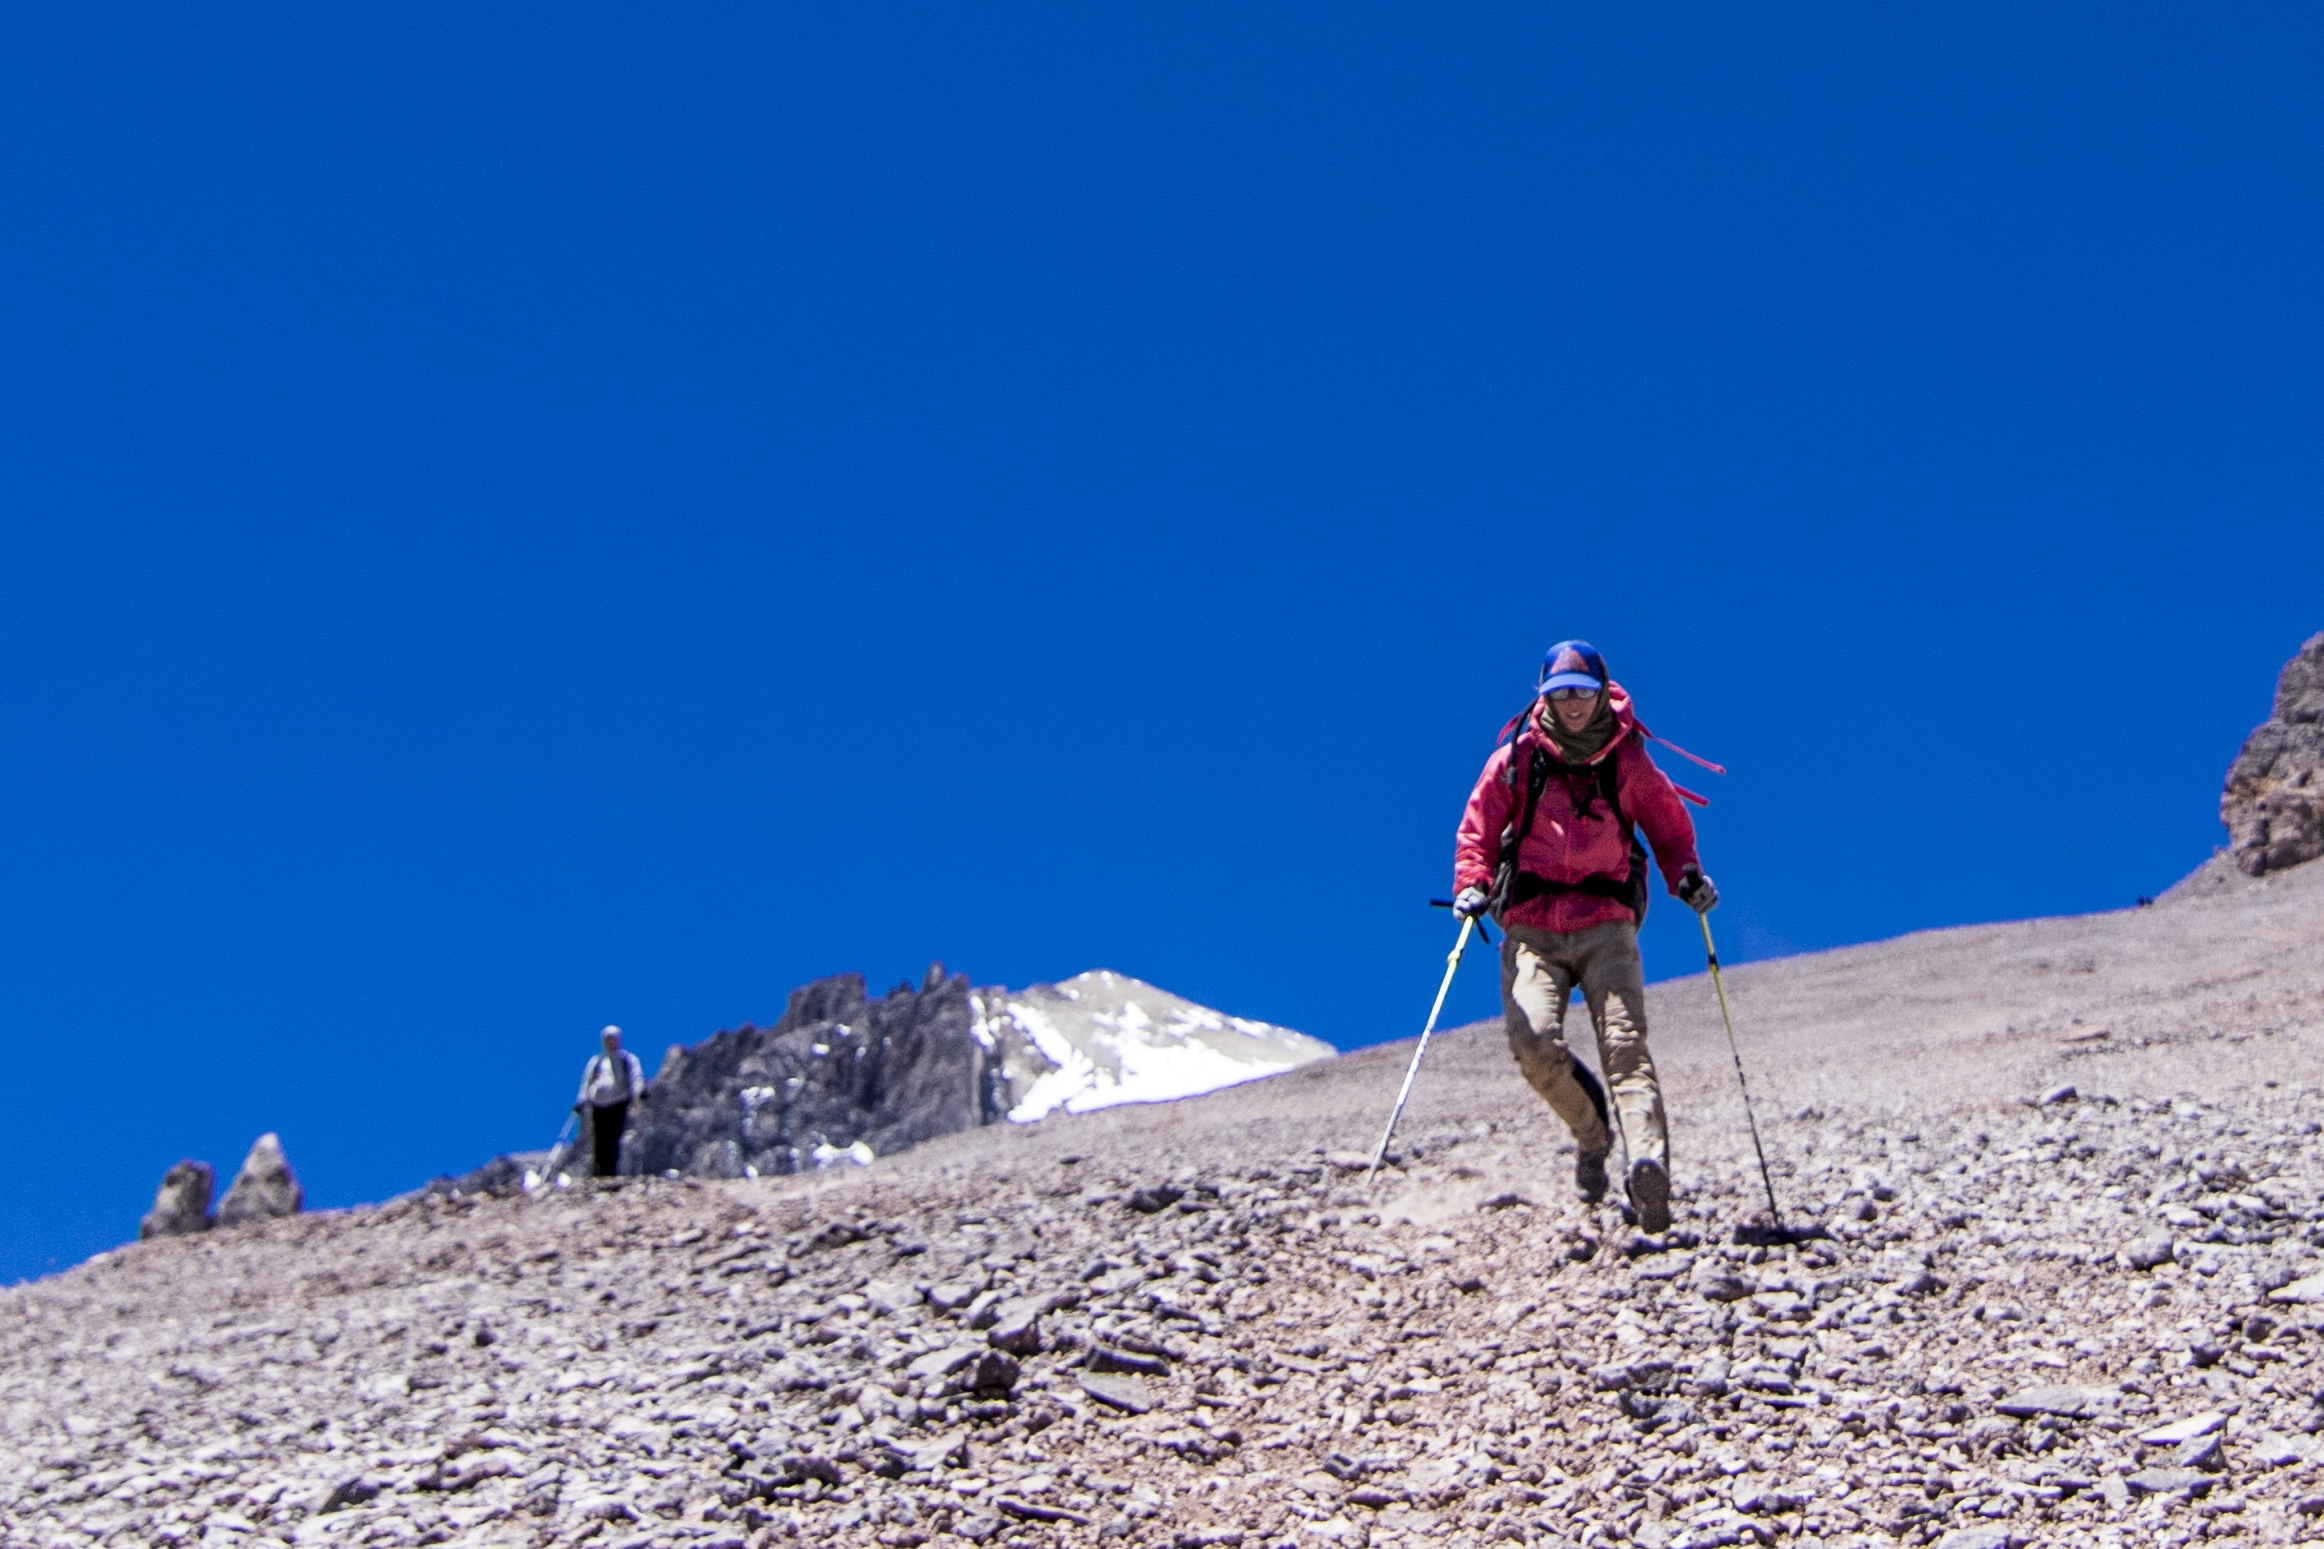 Flying down the scree slop between Nido and Plaza de Mulas